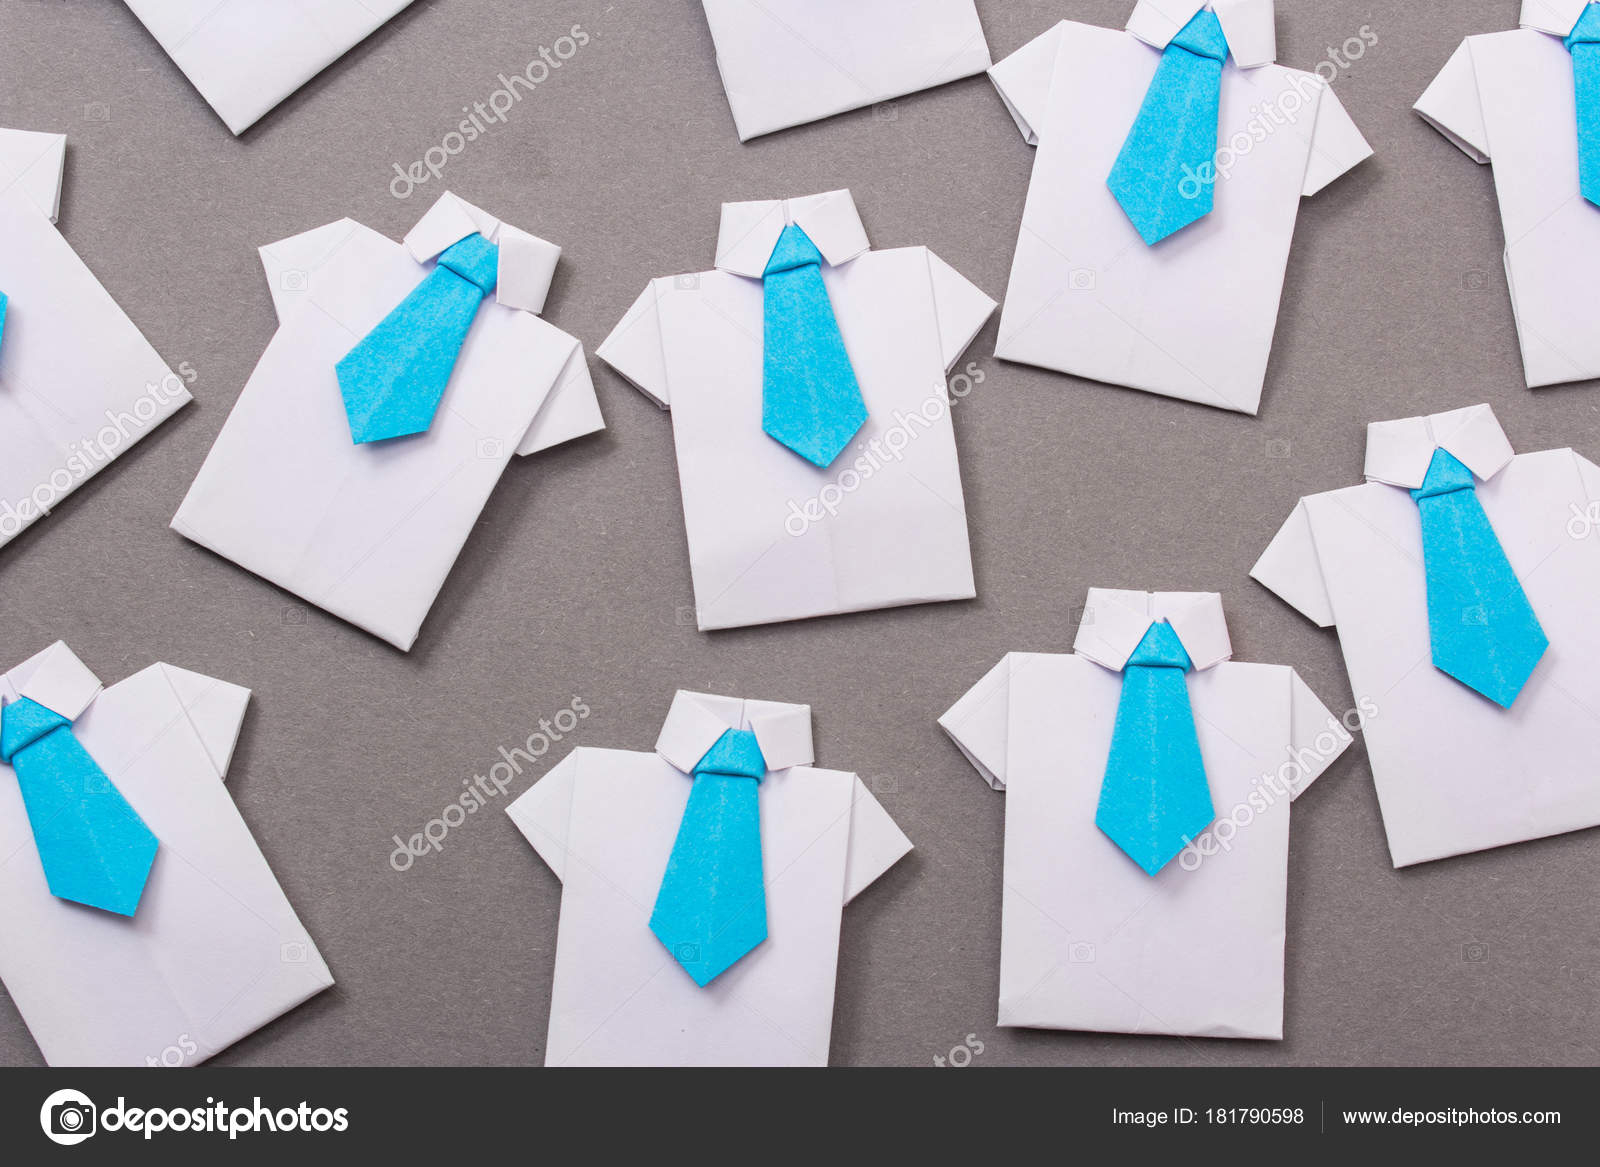 Origami Shirt And Tie Office Workers Shirt Tie Made Paper Origami Copy Space Text Stock